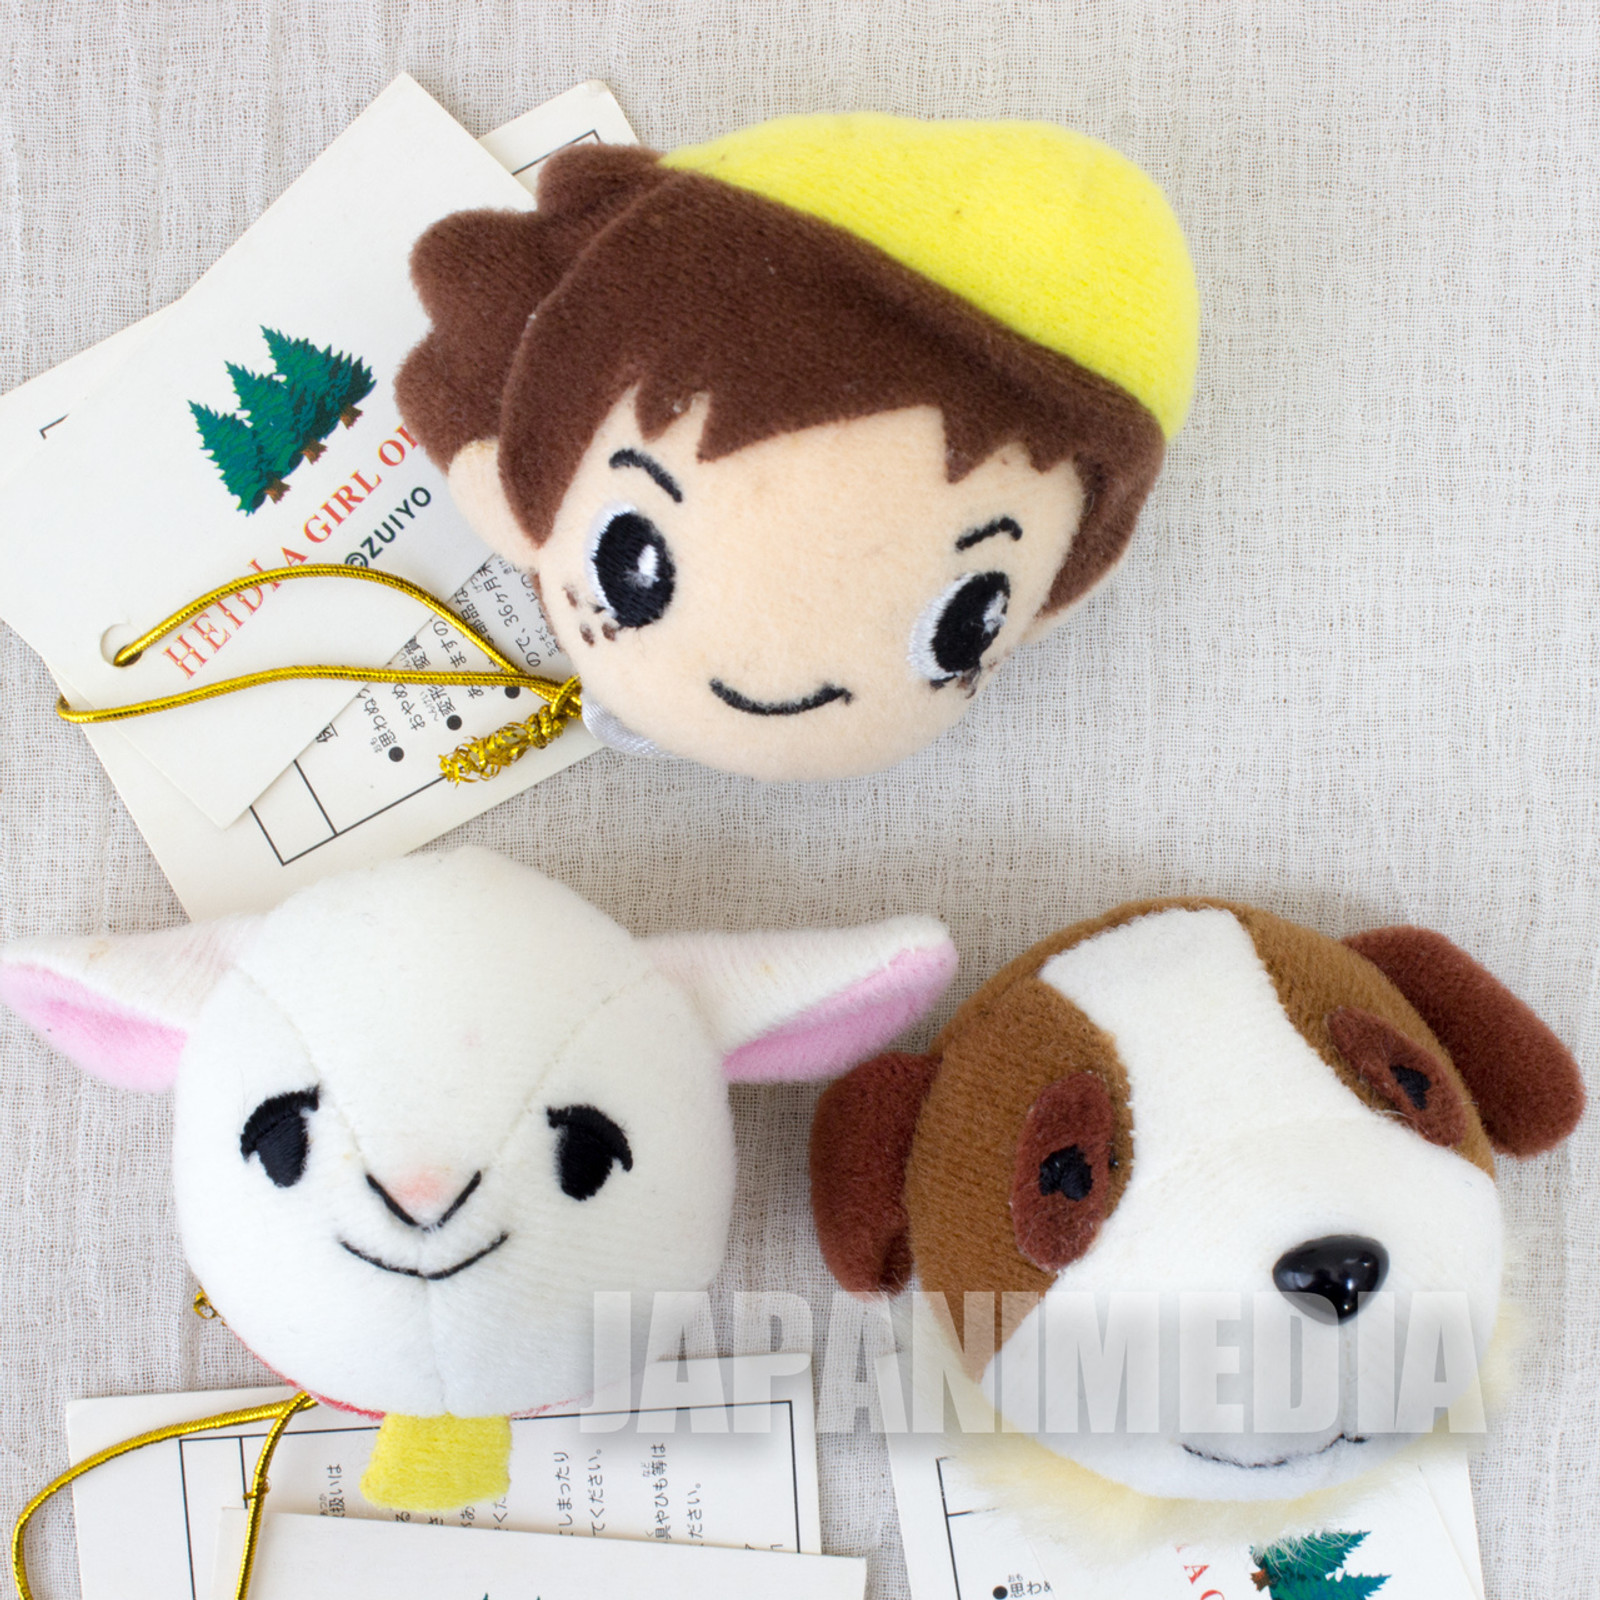 Heidi Girl of the Alps Peter + Josef  + Yuki Plush Doll Face Magnet 3pc Set JAPAN ANIME